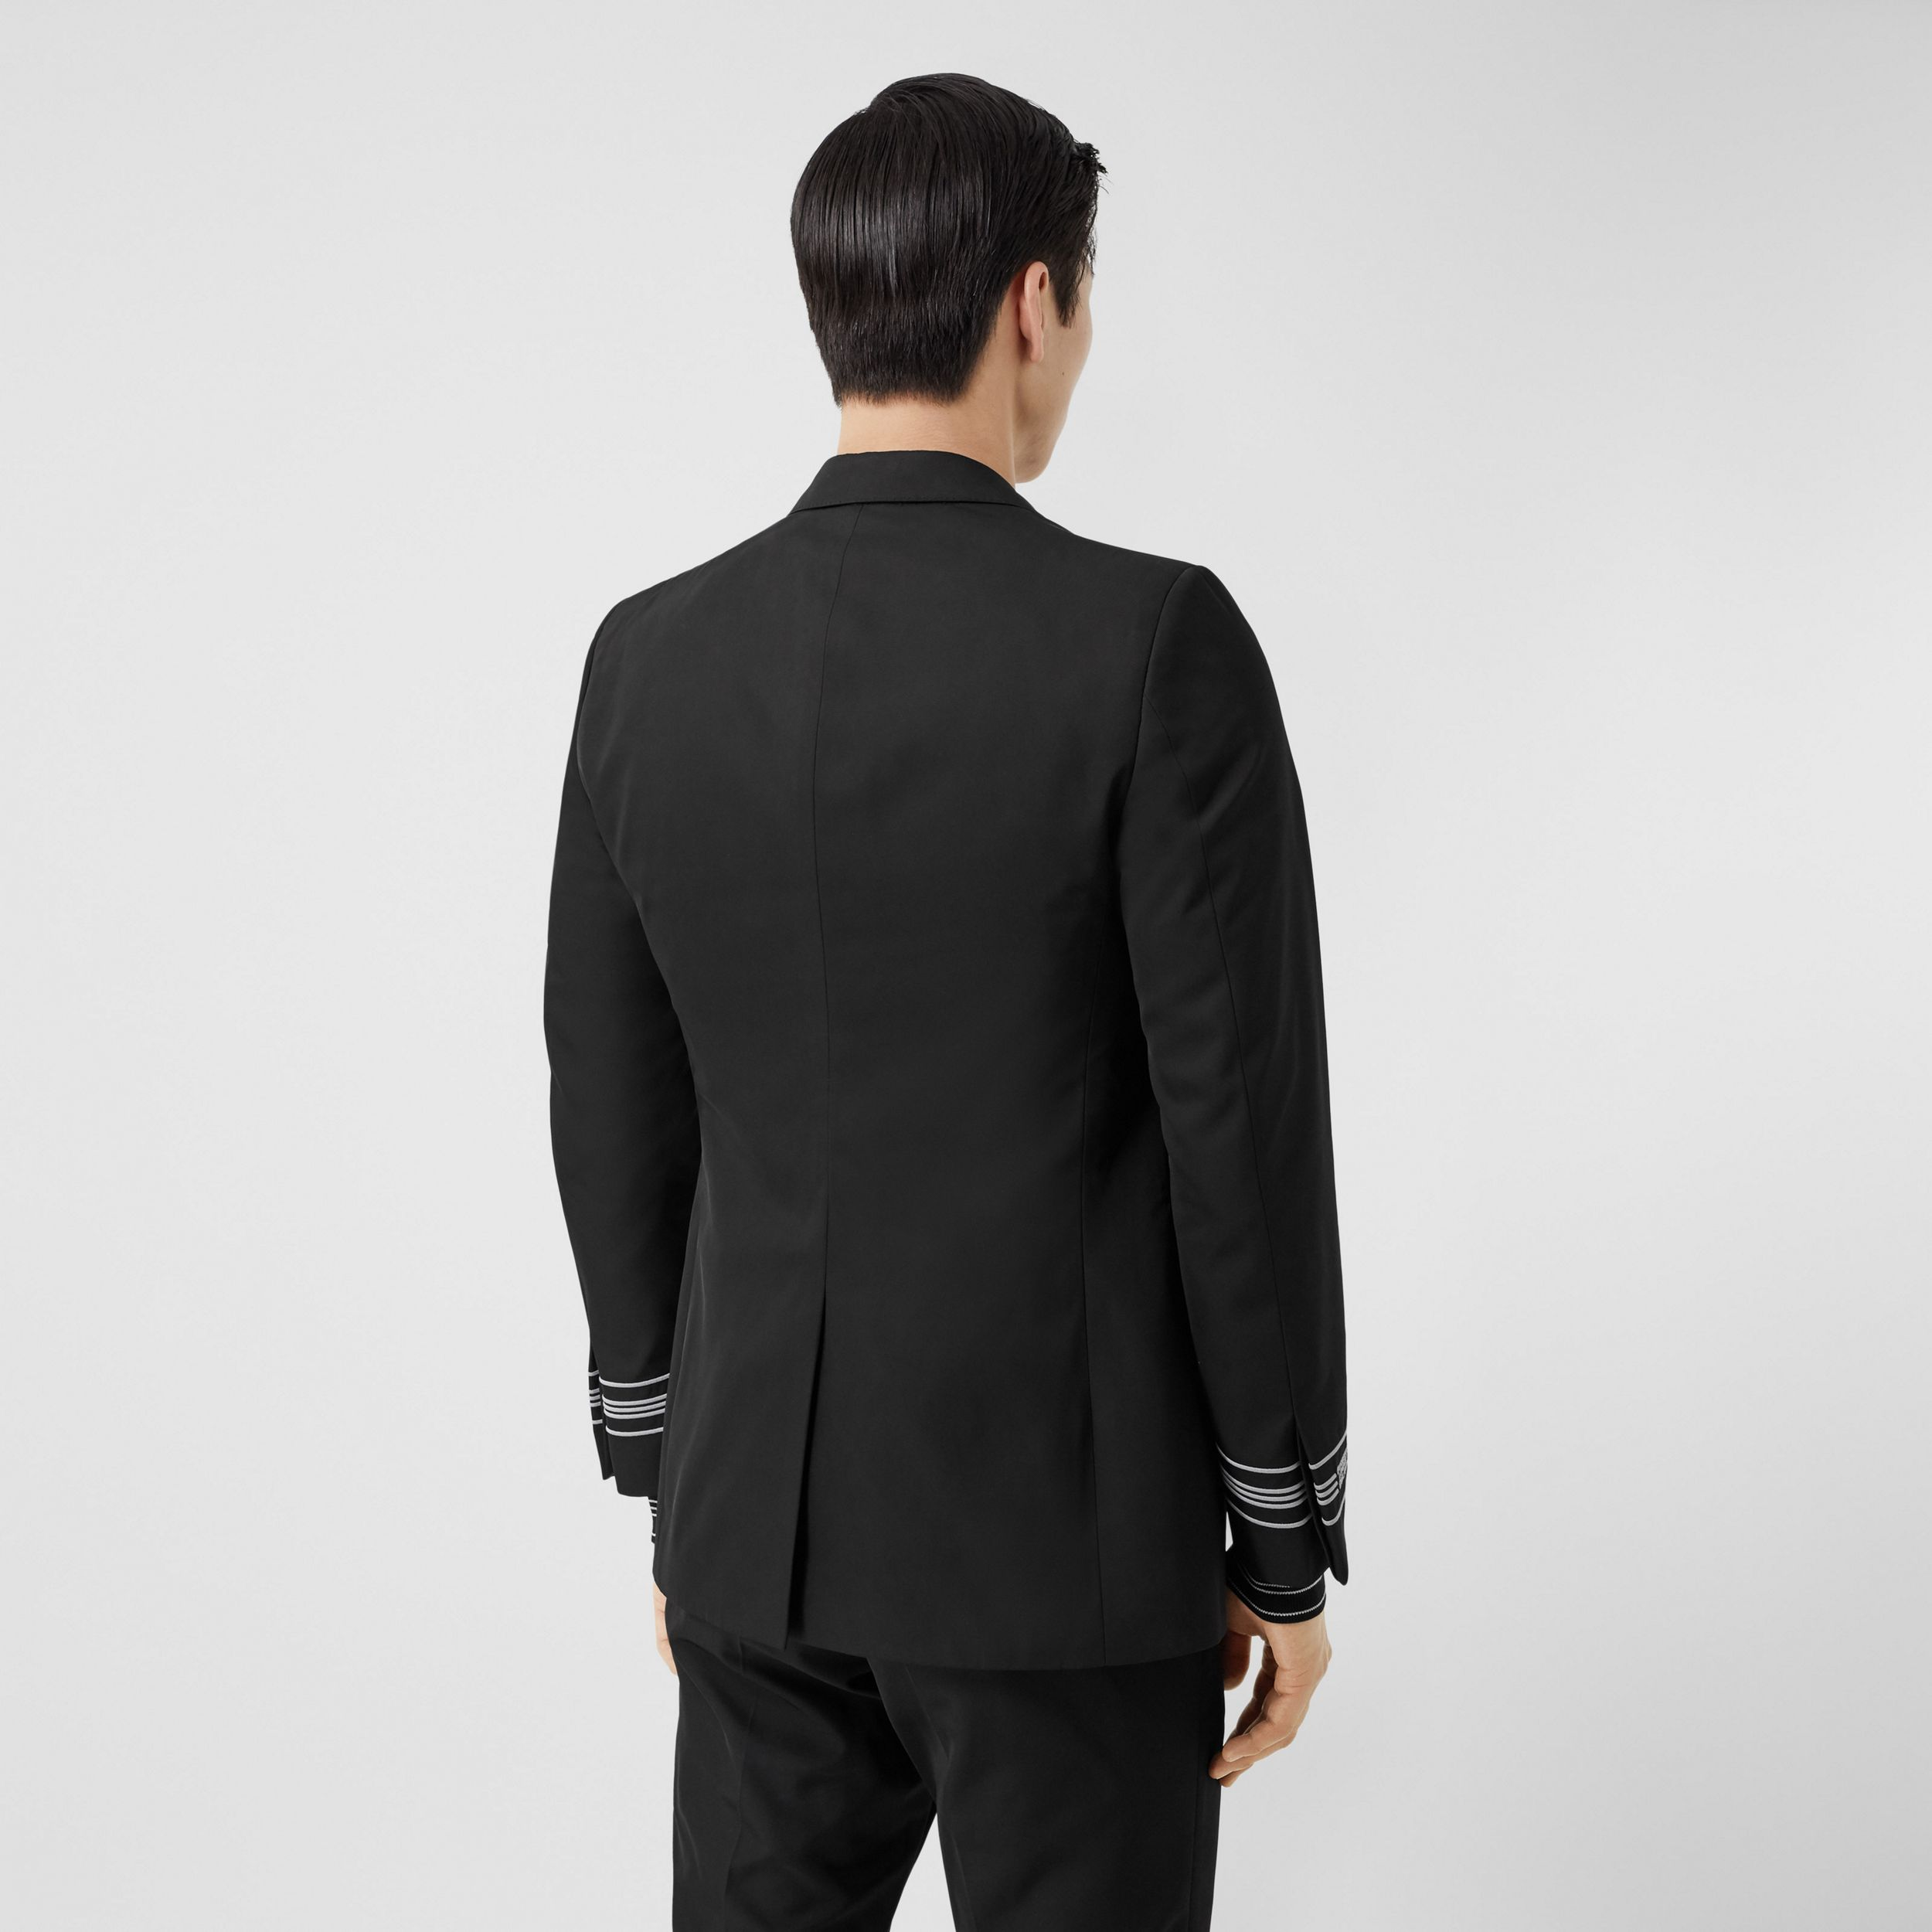 Classic Fit Stripe Detail Technical Twill Tailored Jacket in Black - Men | Burberry United States - 3